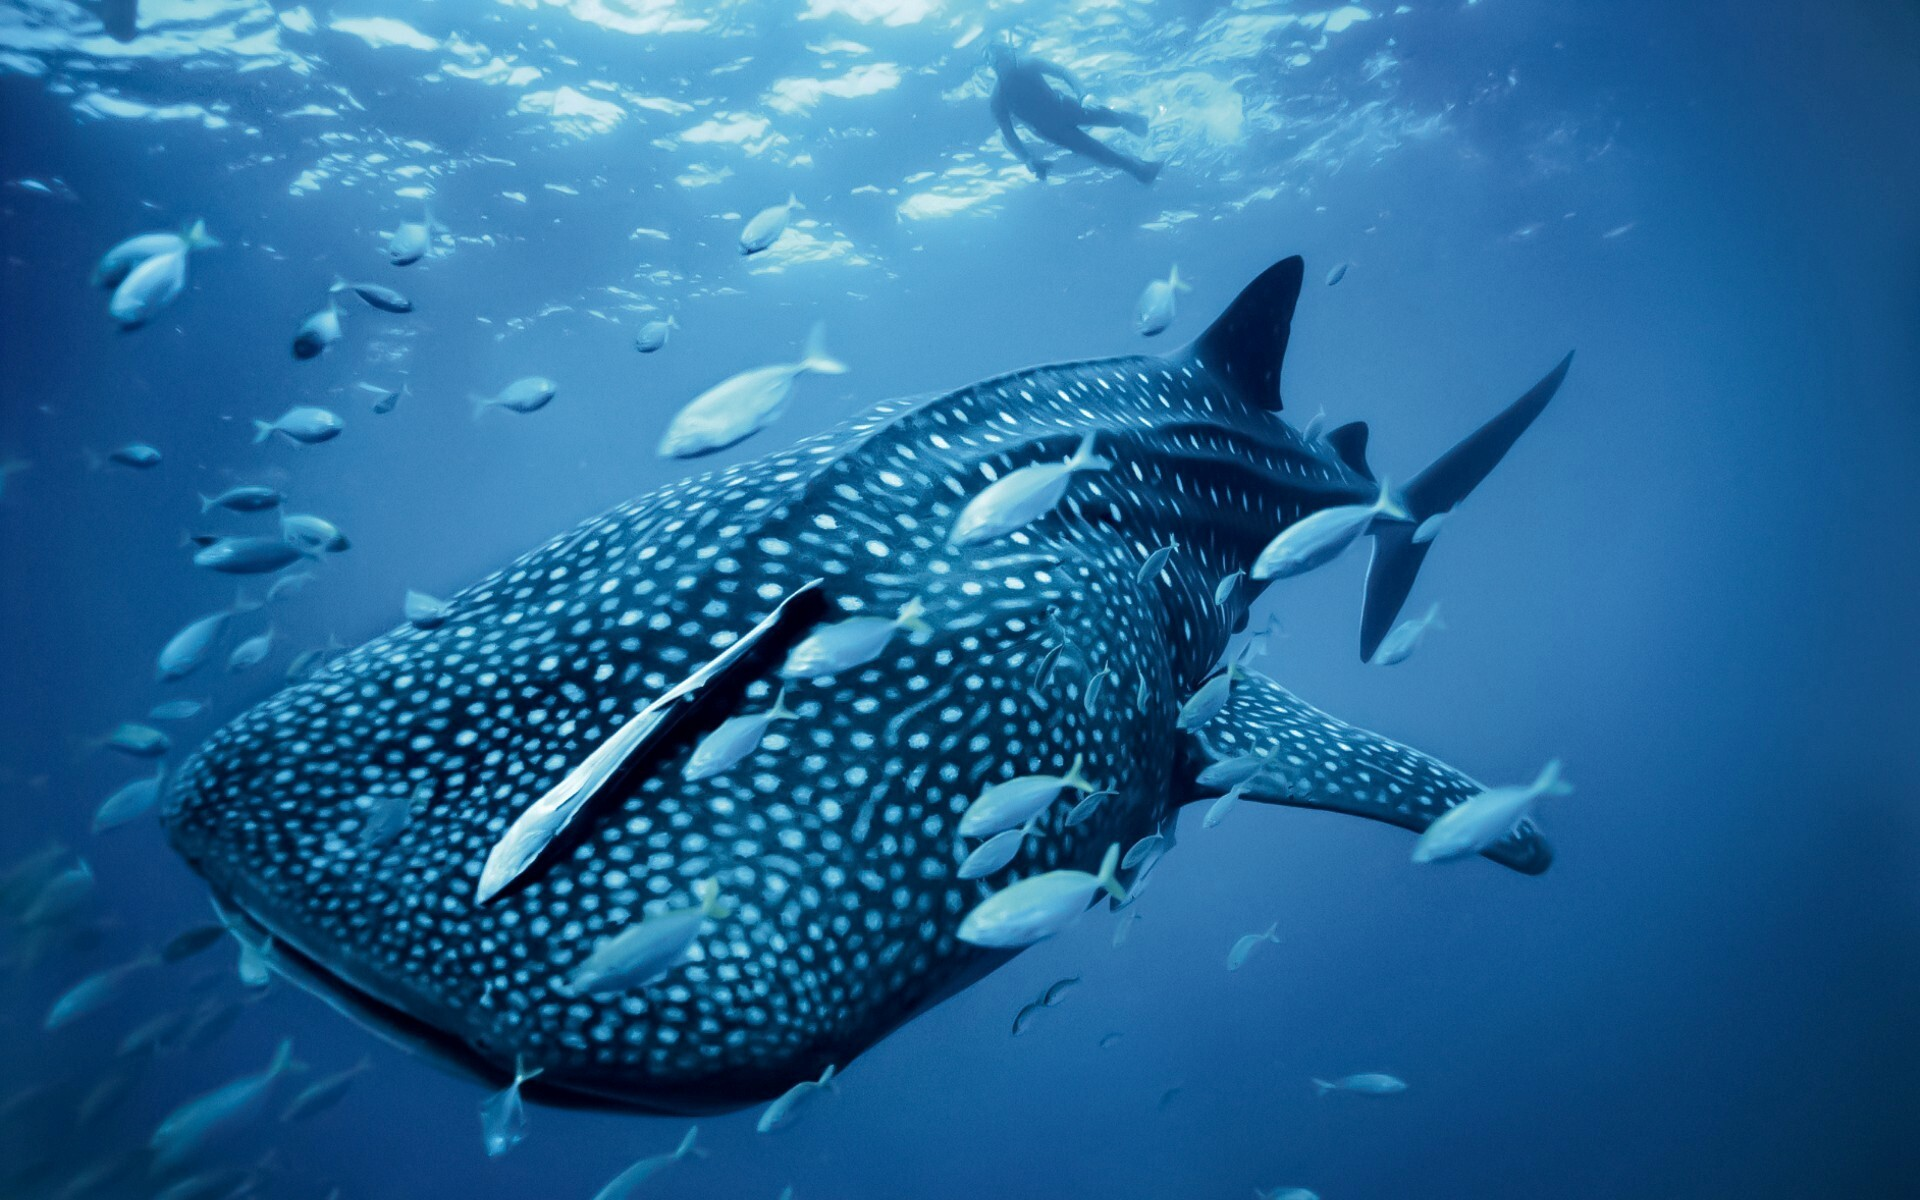 Image of: Desktop Hd Nice Wallpapers Whale Shark In Australian Blue Sea Animal Wallpaper Hd Wallpapers